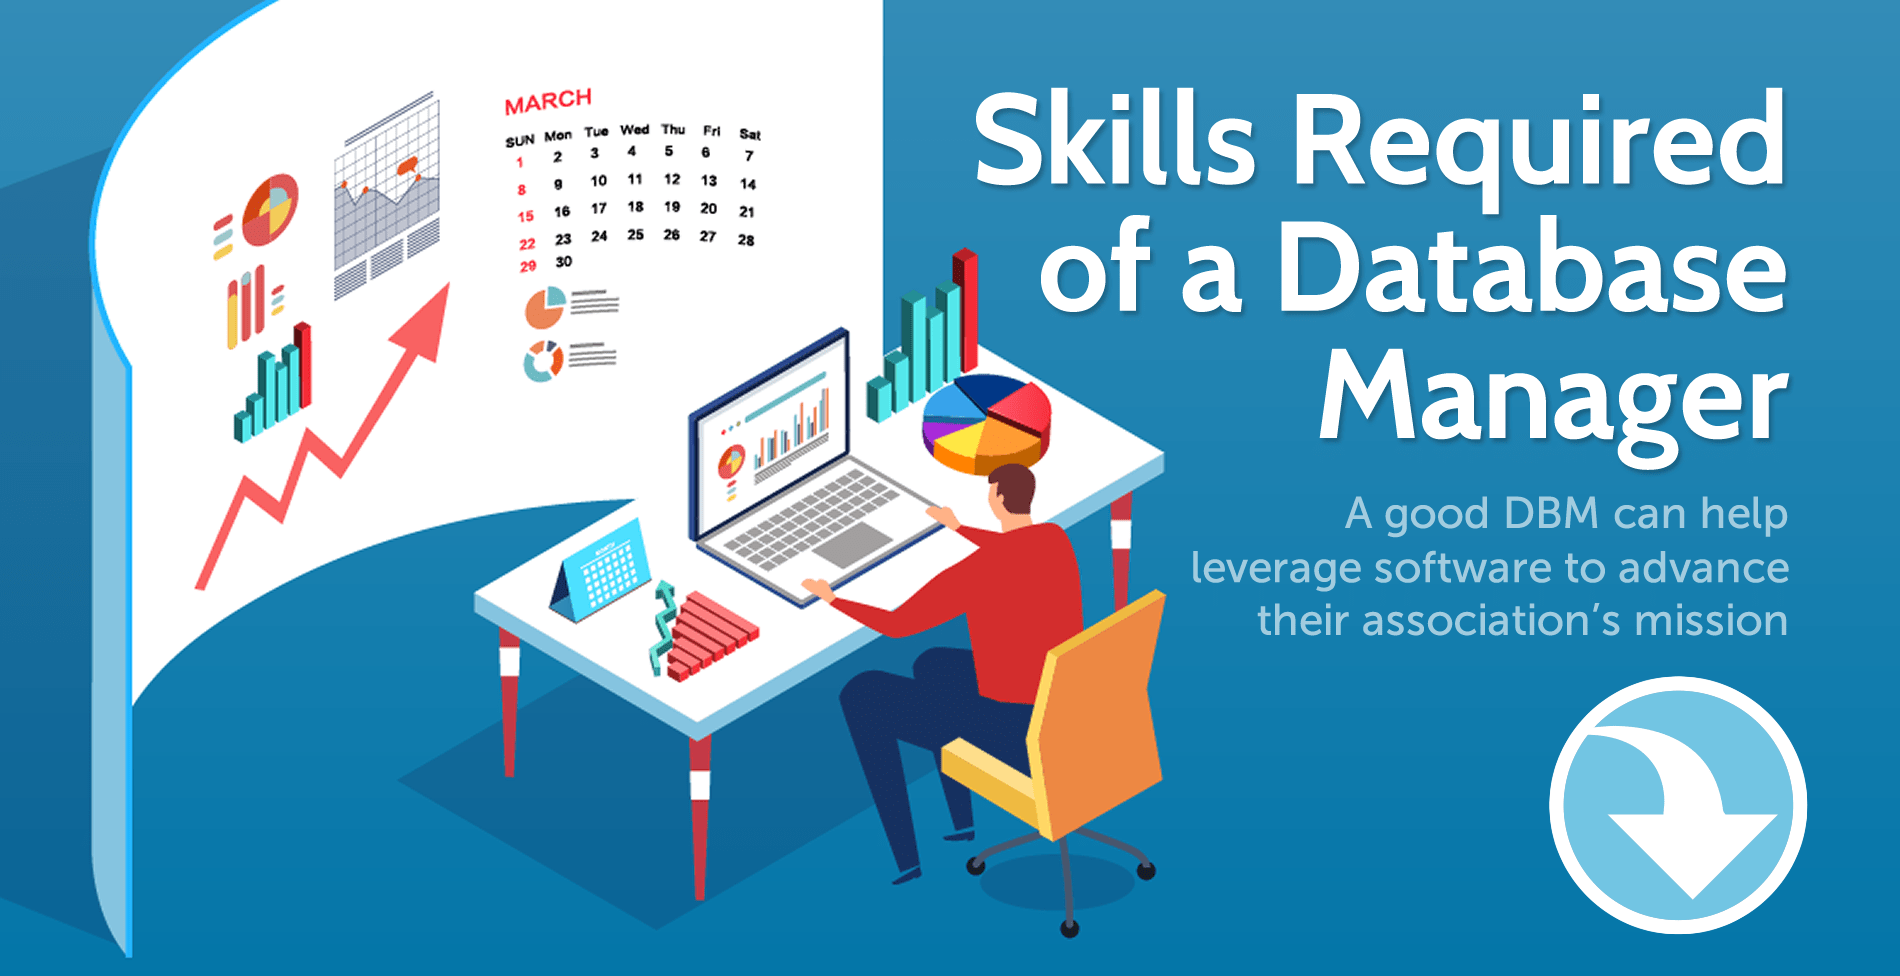 Skills Required of a Database Manager